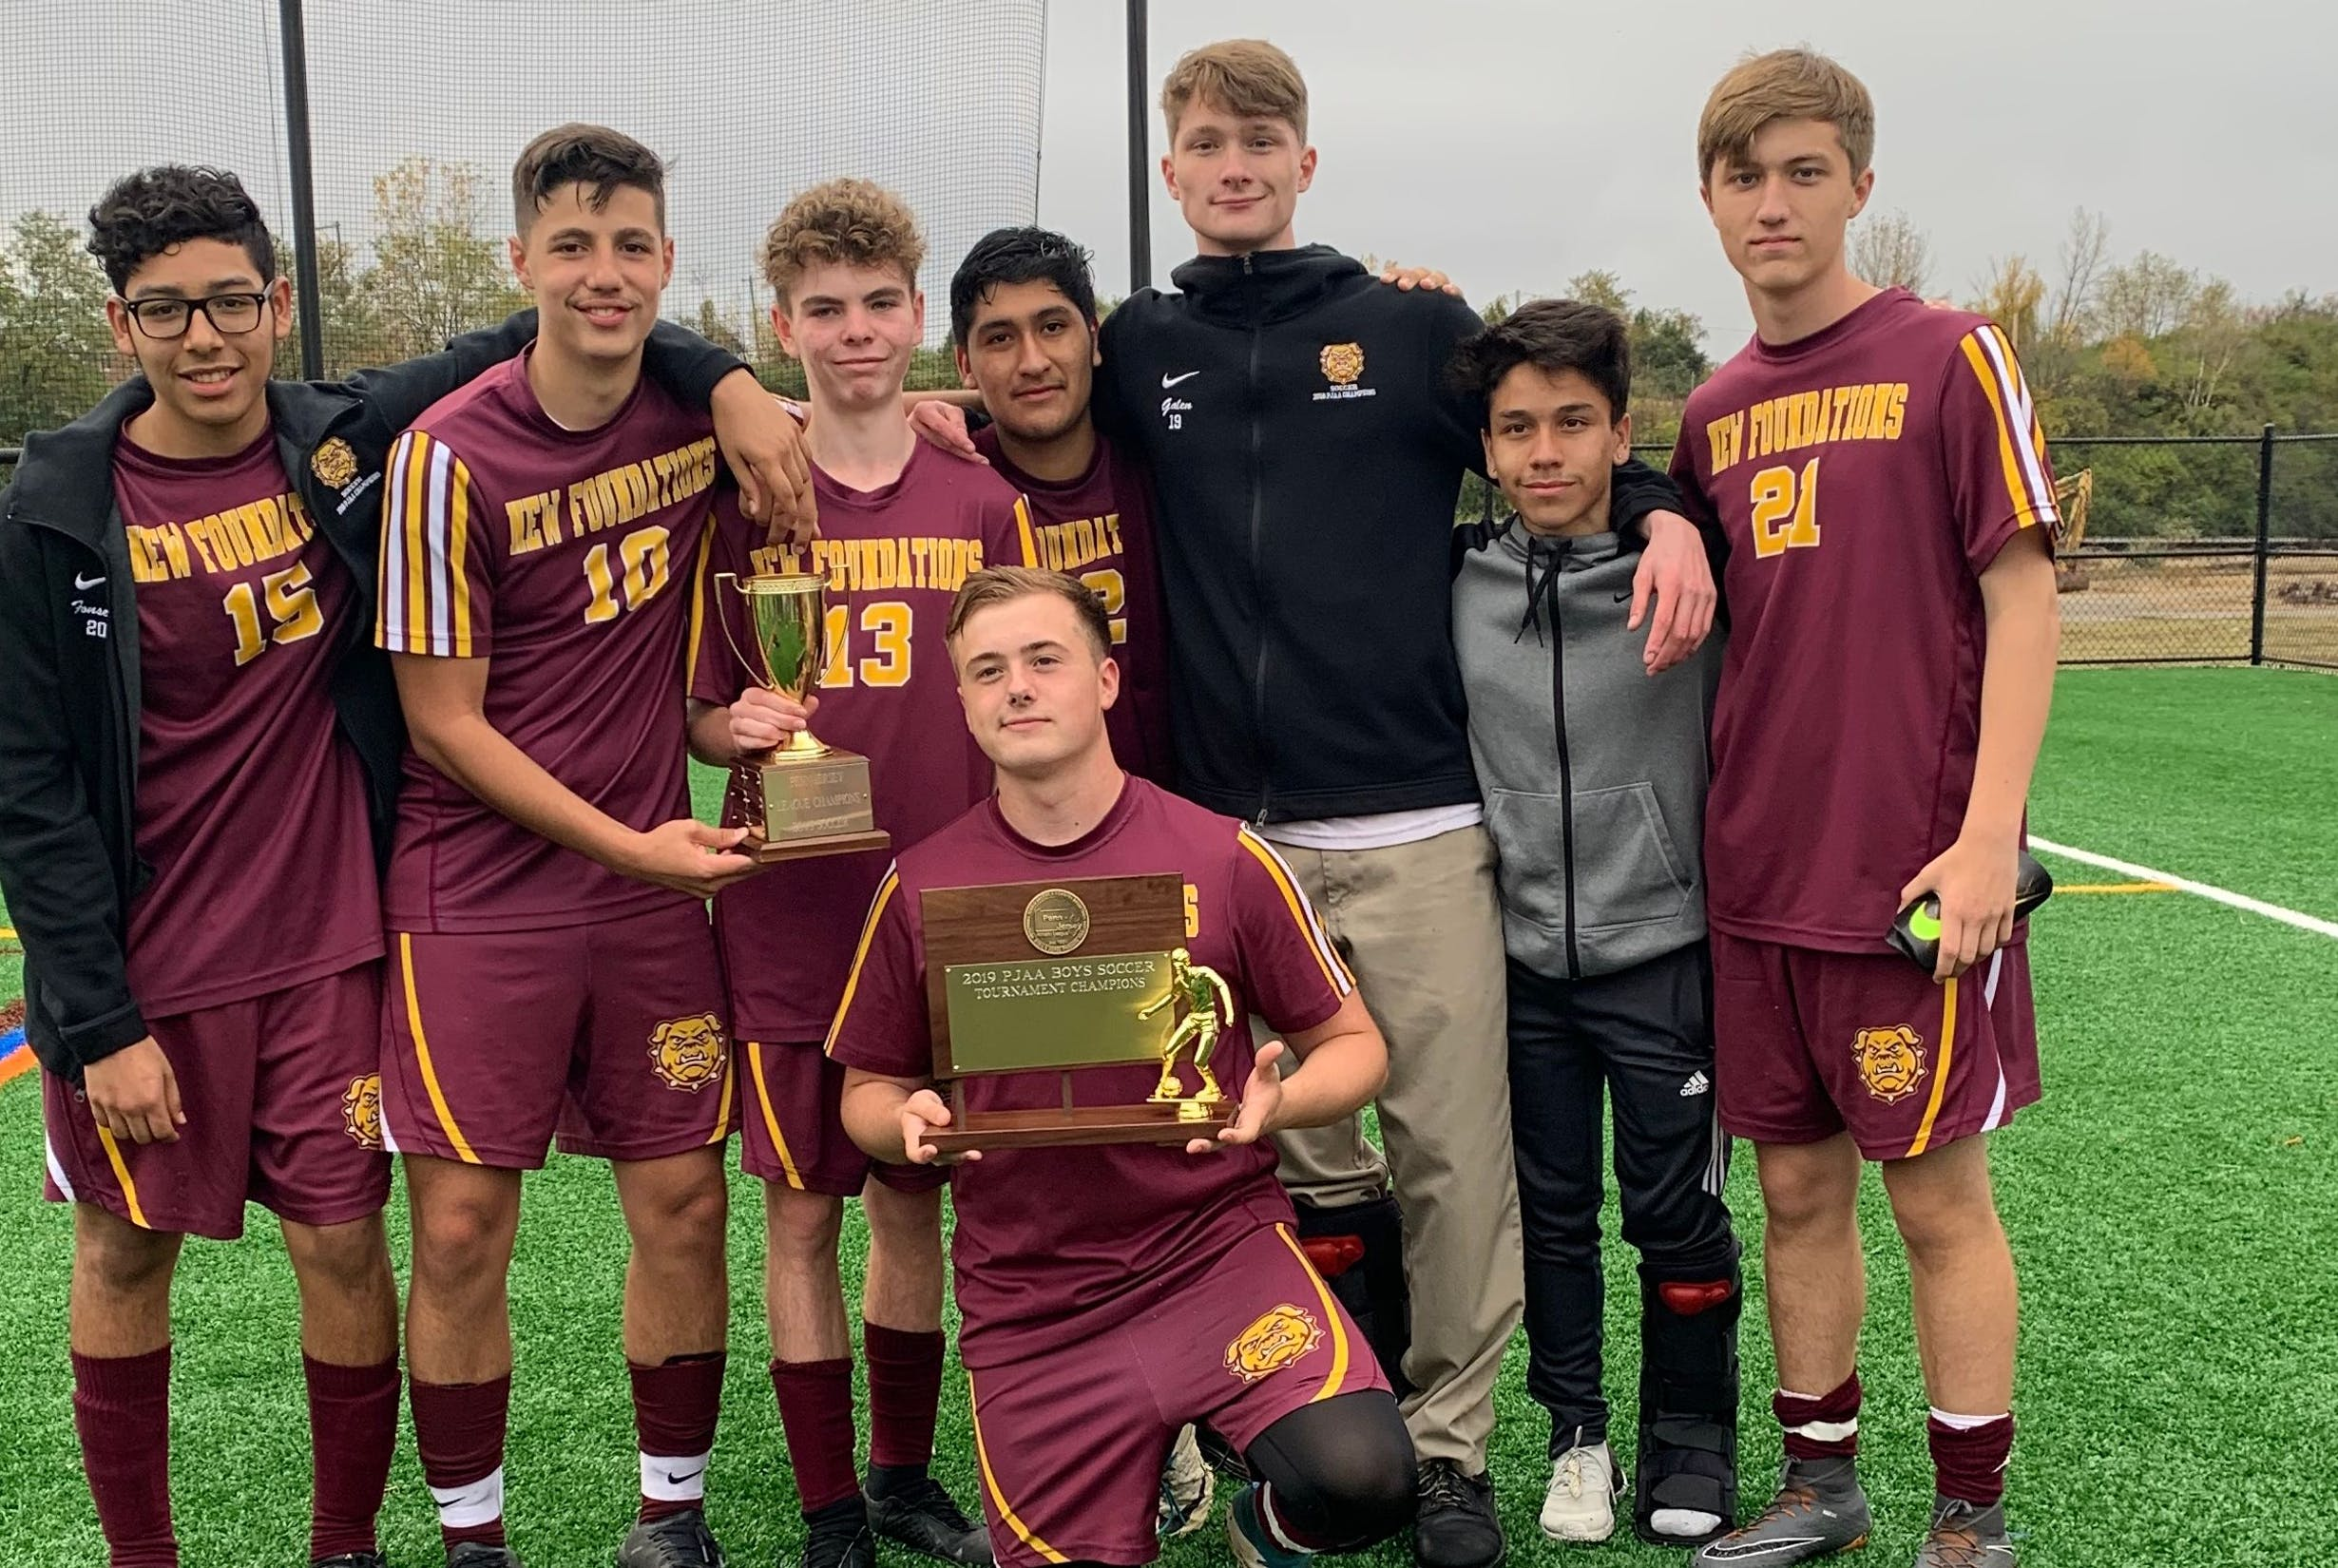 School soccer team poses on the playing field with trophies